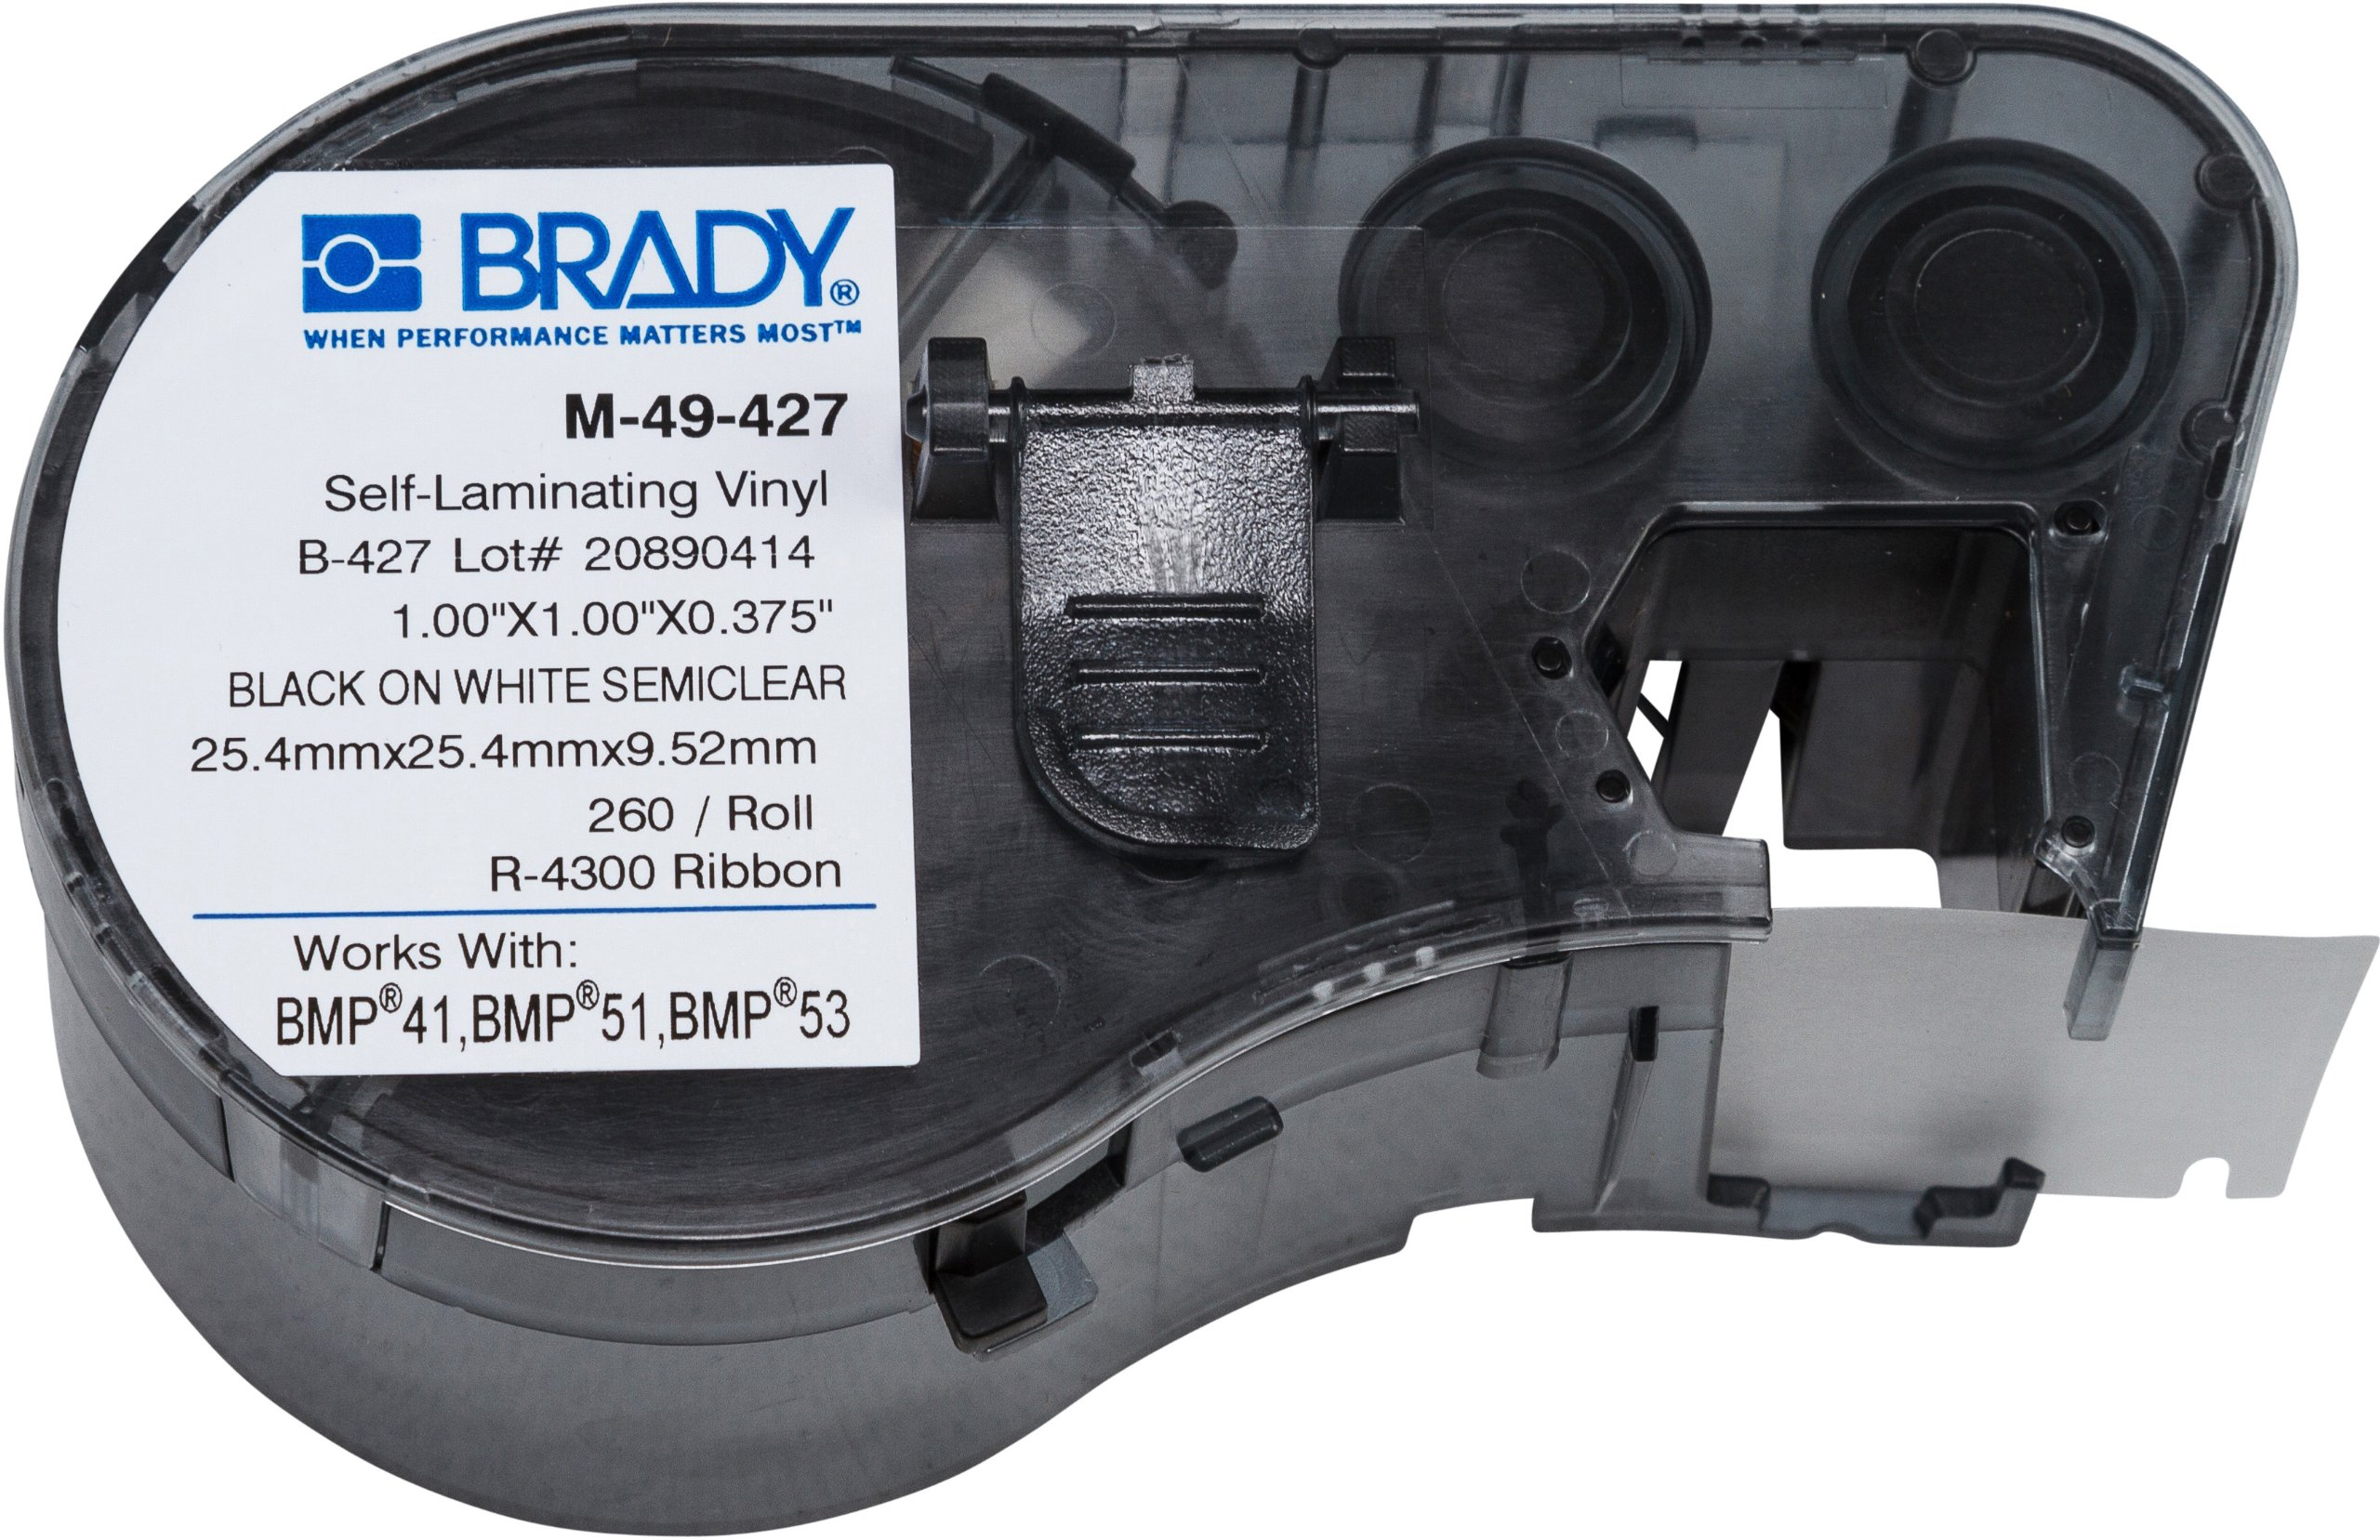 Brady Self-Laminating Vinyl Label Tape (M-49-427) - Black on White, Translucent Tape - Compatible with BMP41, BMP51, and BMP53 Label Makers - 1'' Height, .375'' Width